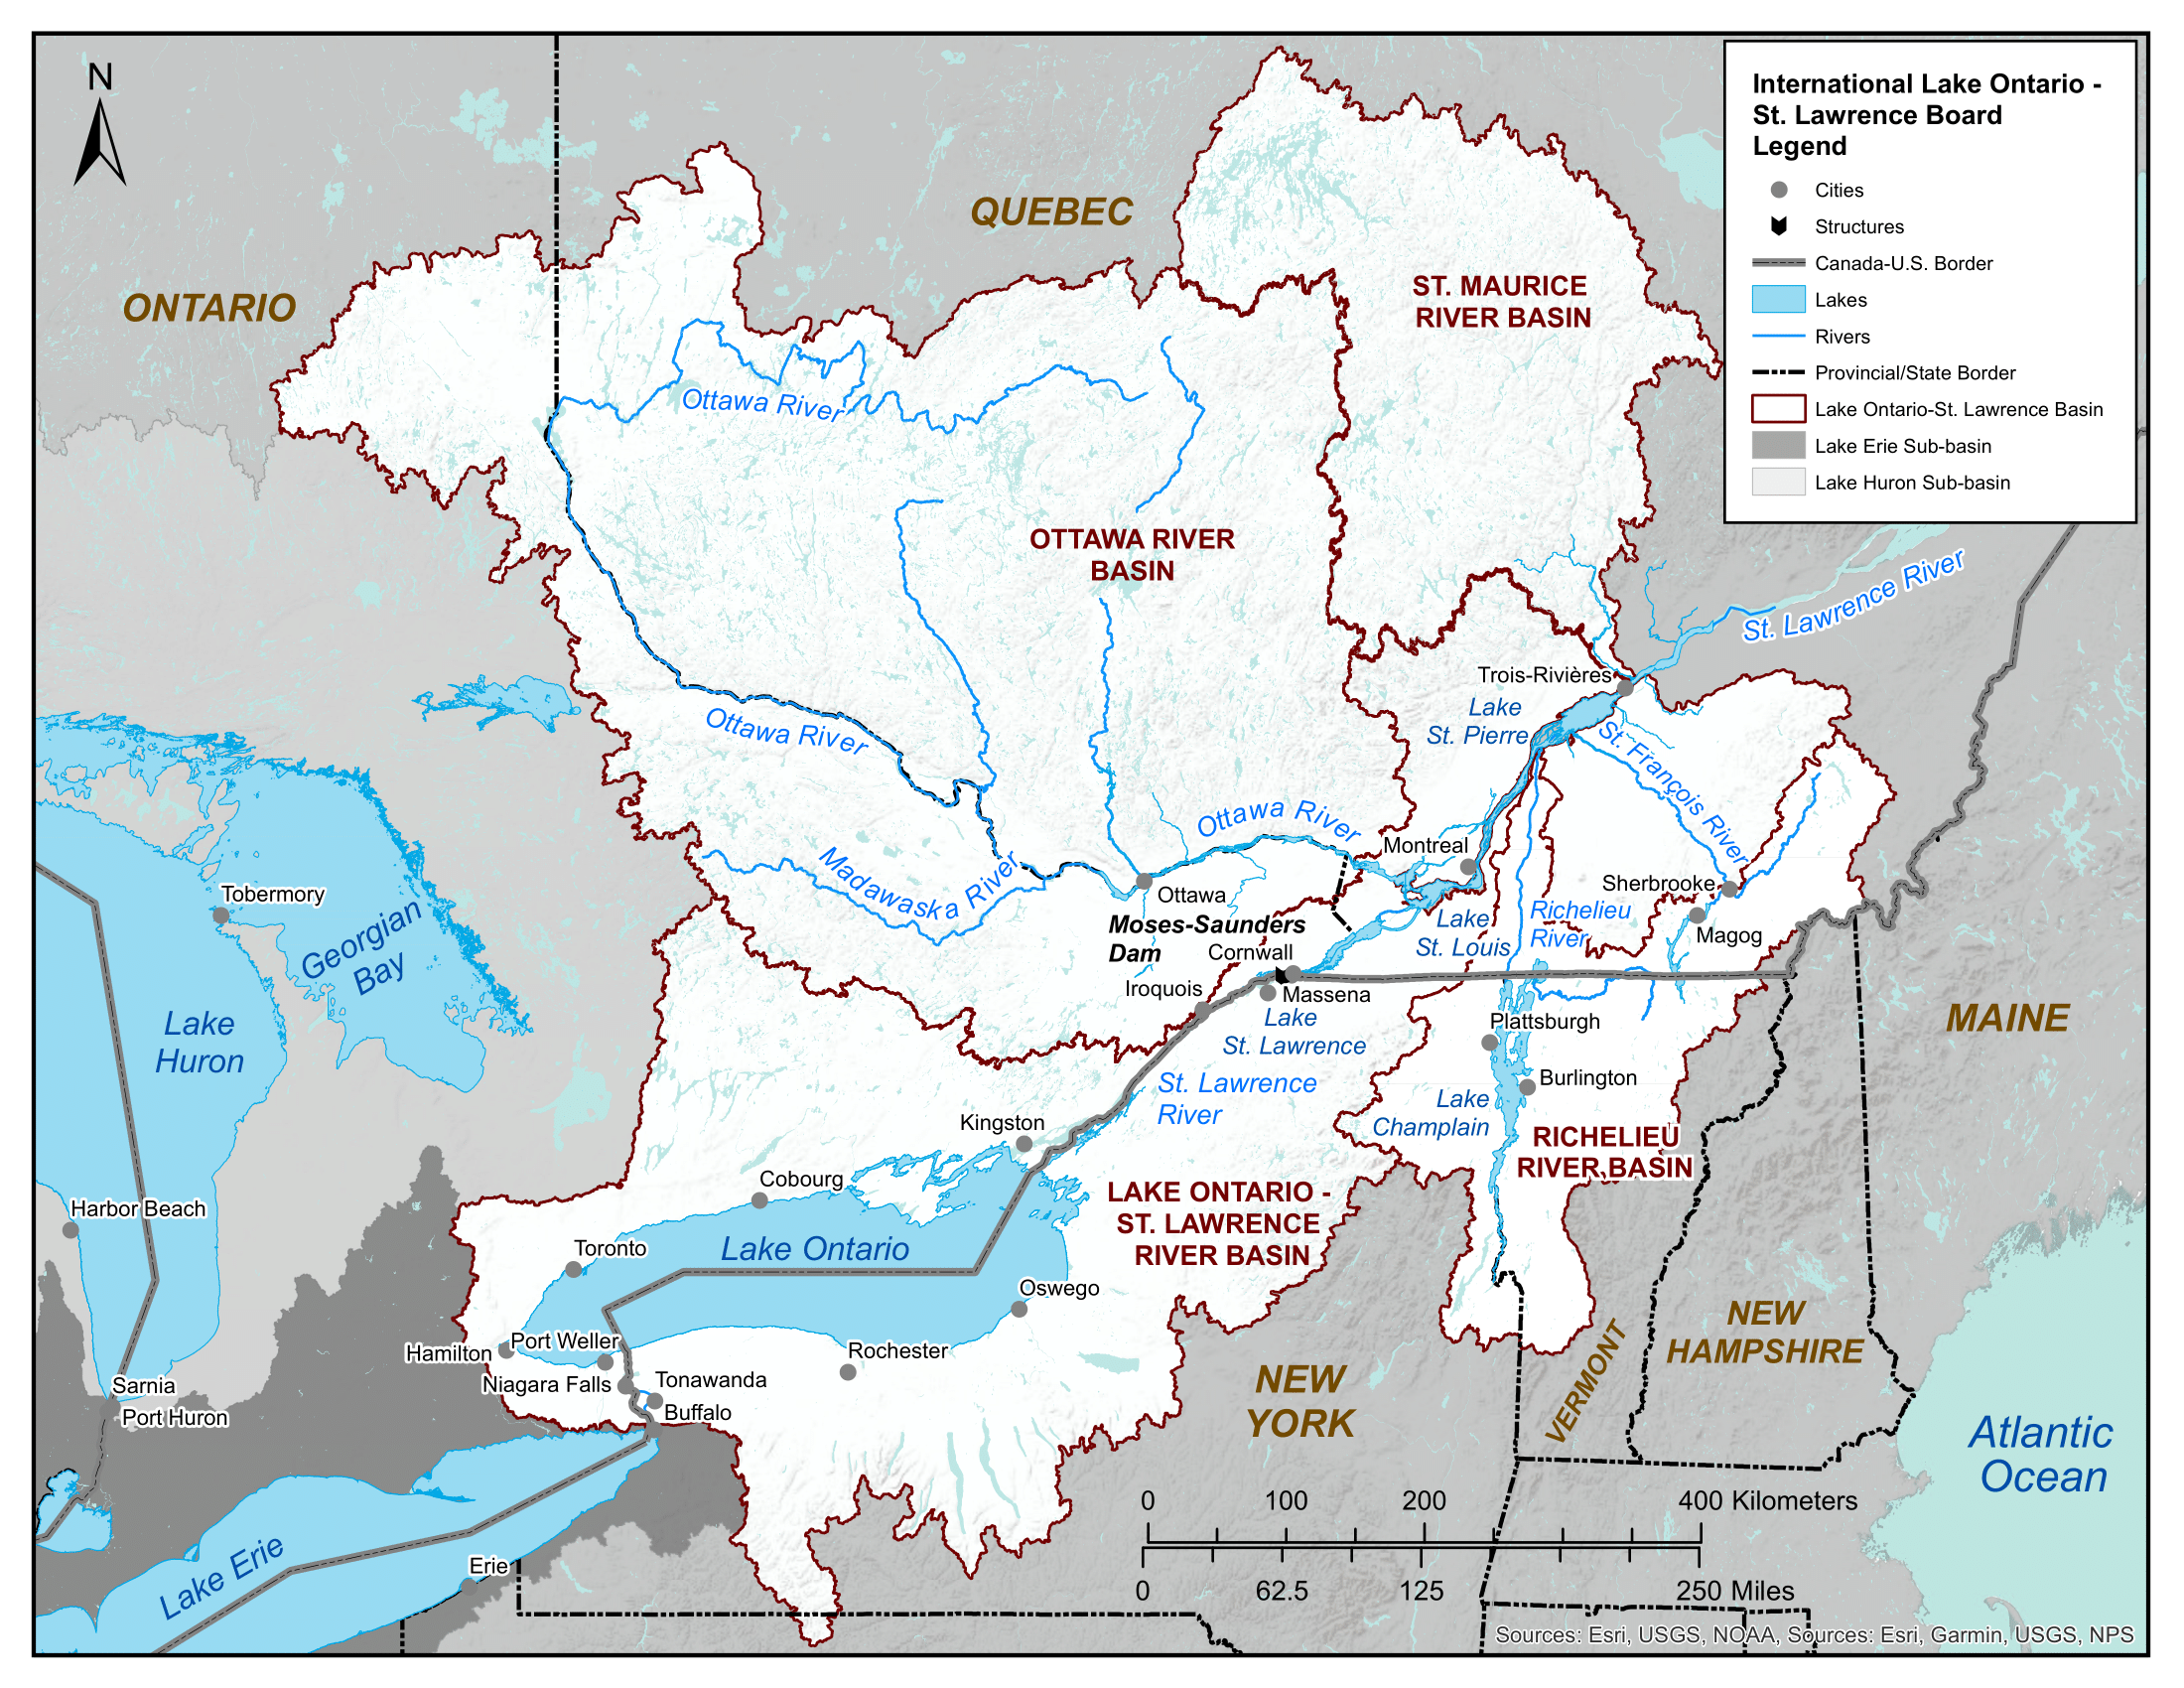 Map of Lake Ontario and St. Lawrence River